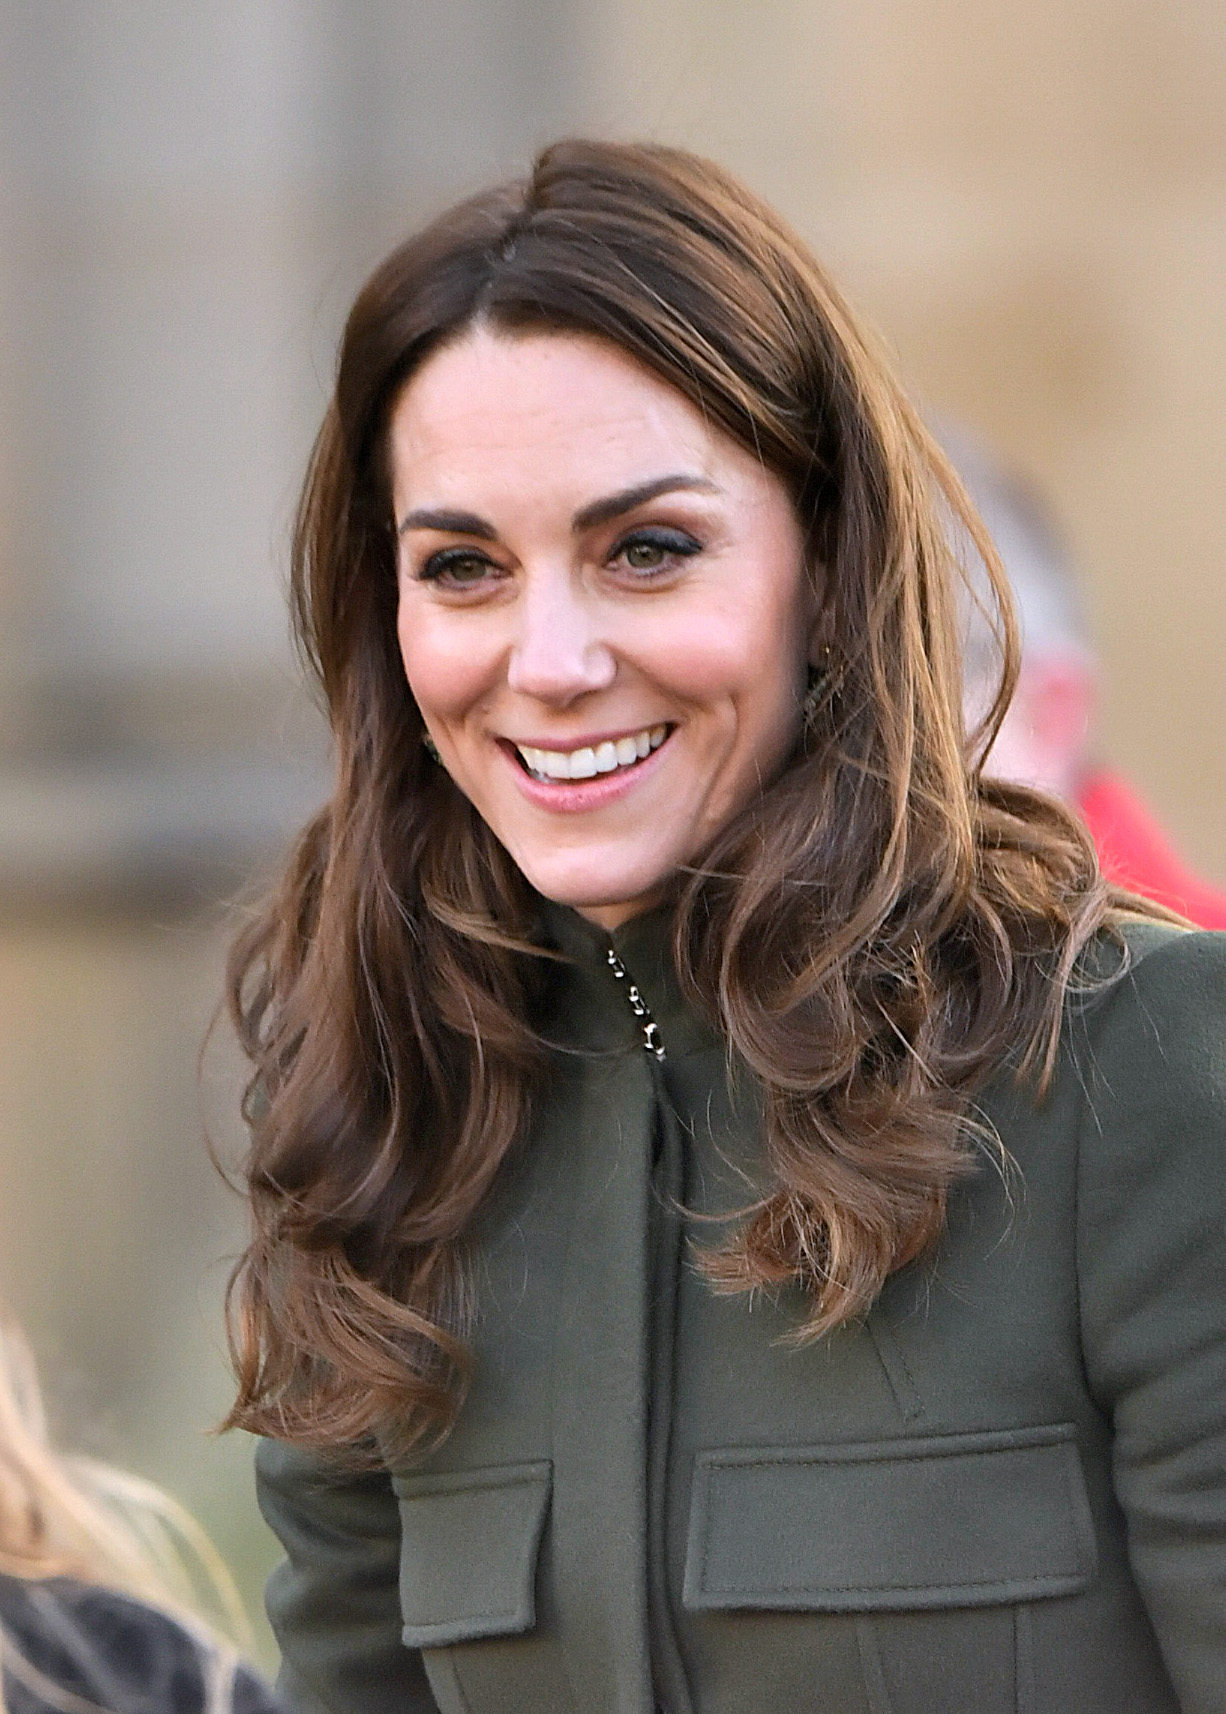 BRADFORD, ENGLAND - JANUARY 15: Catherine, Duchess of Cambridge leaves after her visit to City Hall in Bradford's Centenary Square, on January 15, 2020 in Bradford, United Kingdom. (Photo by Samir Hussein/WireImage)